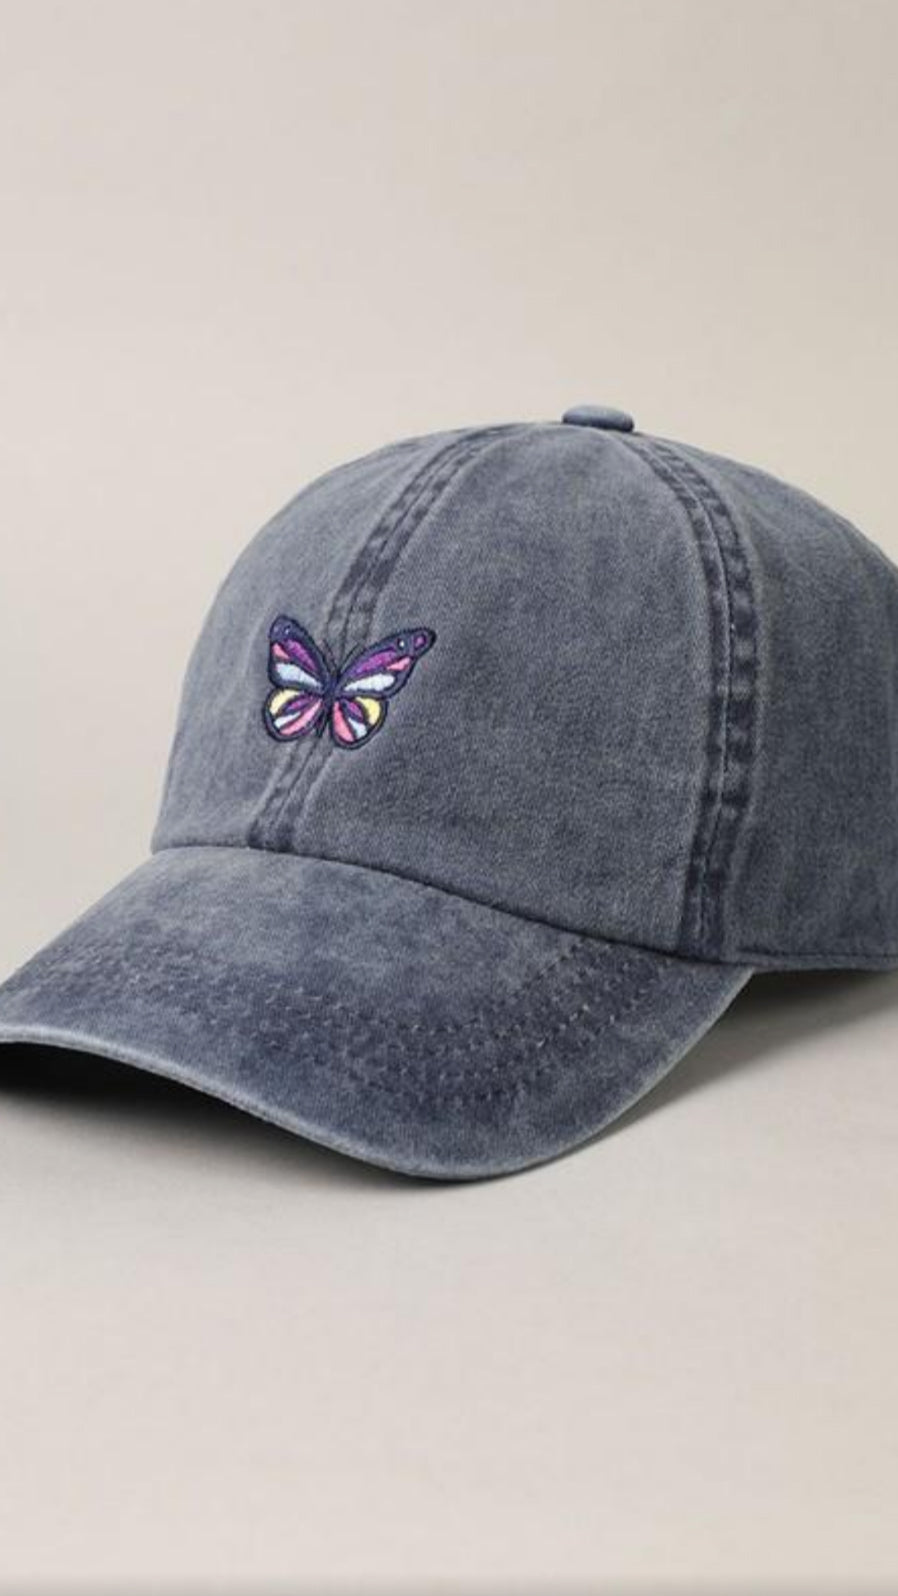 Butterfly Baseball Cap - Navy